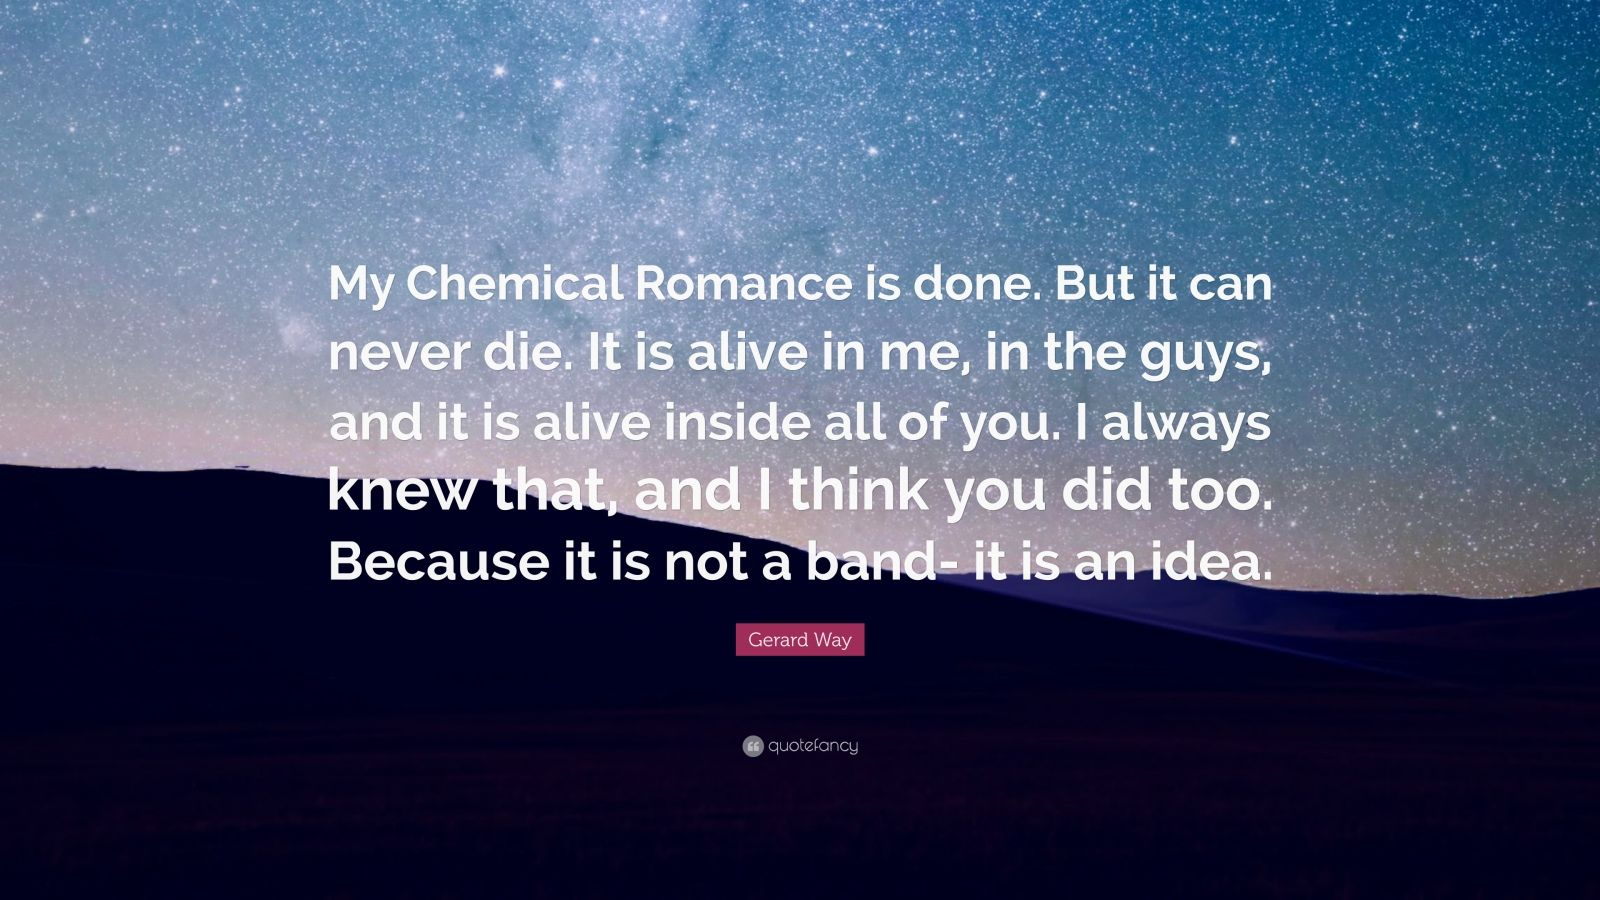 """Gerard Way Quote: """"My Chemical Romance is done. But it can never die. It is alive in me, in the guys, and it is alive inside all of you. I always knew that, and I think you did too. Because it is not a band- it is an idea."""""""